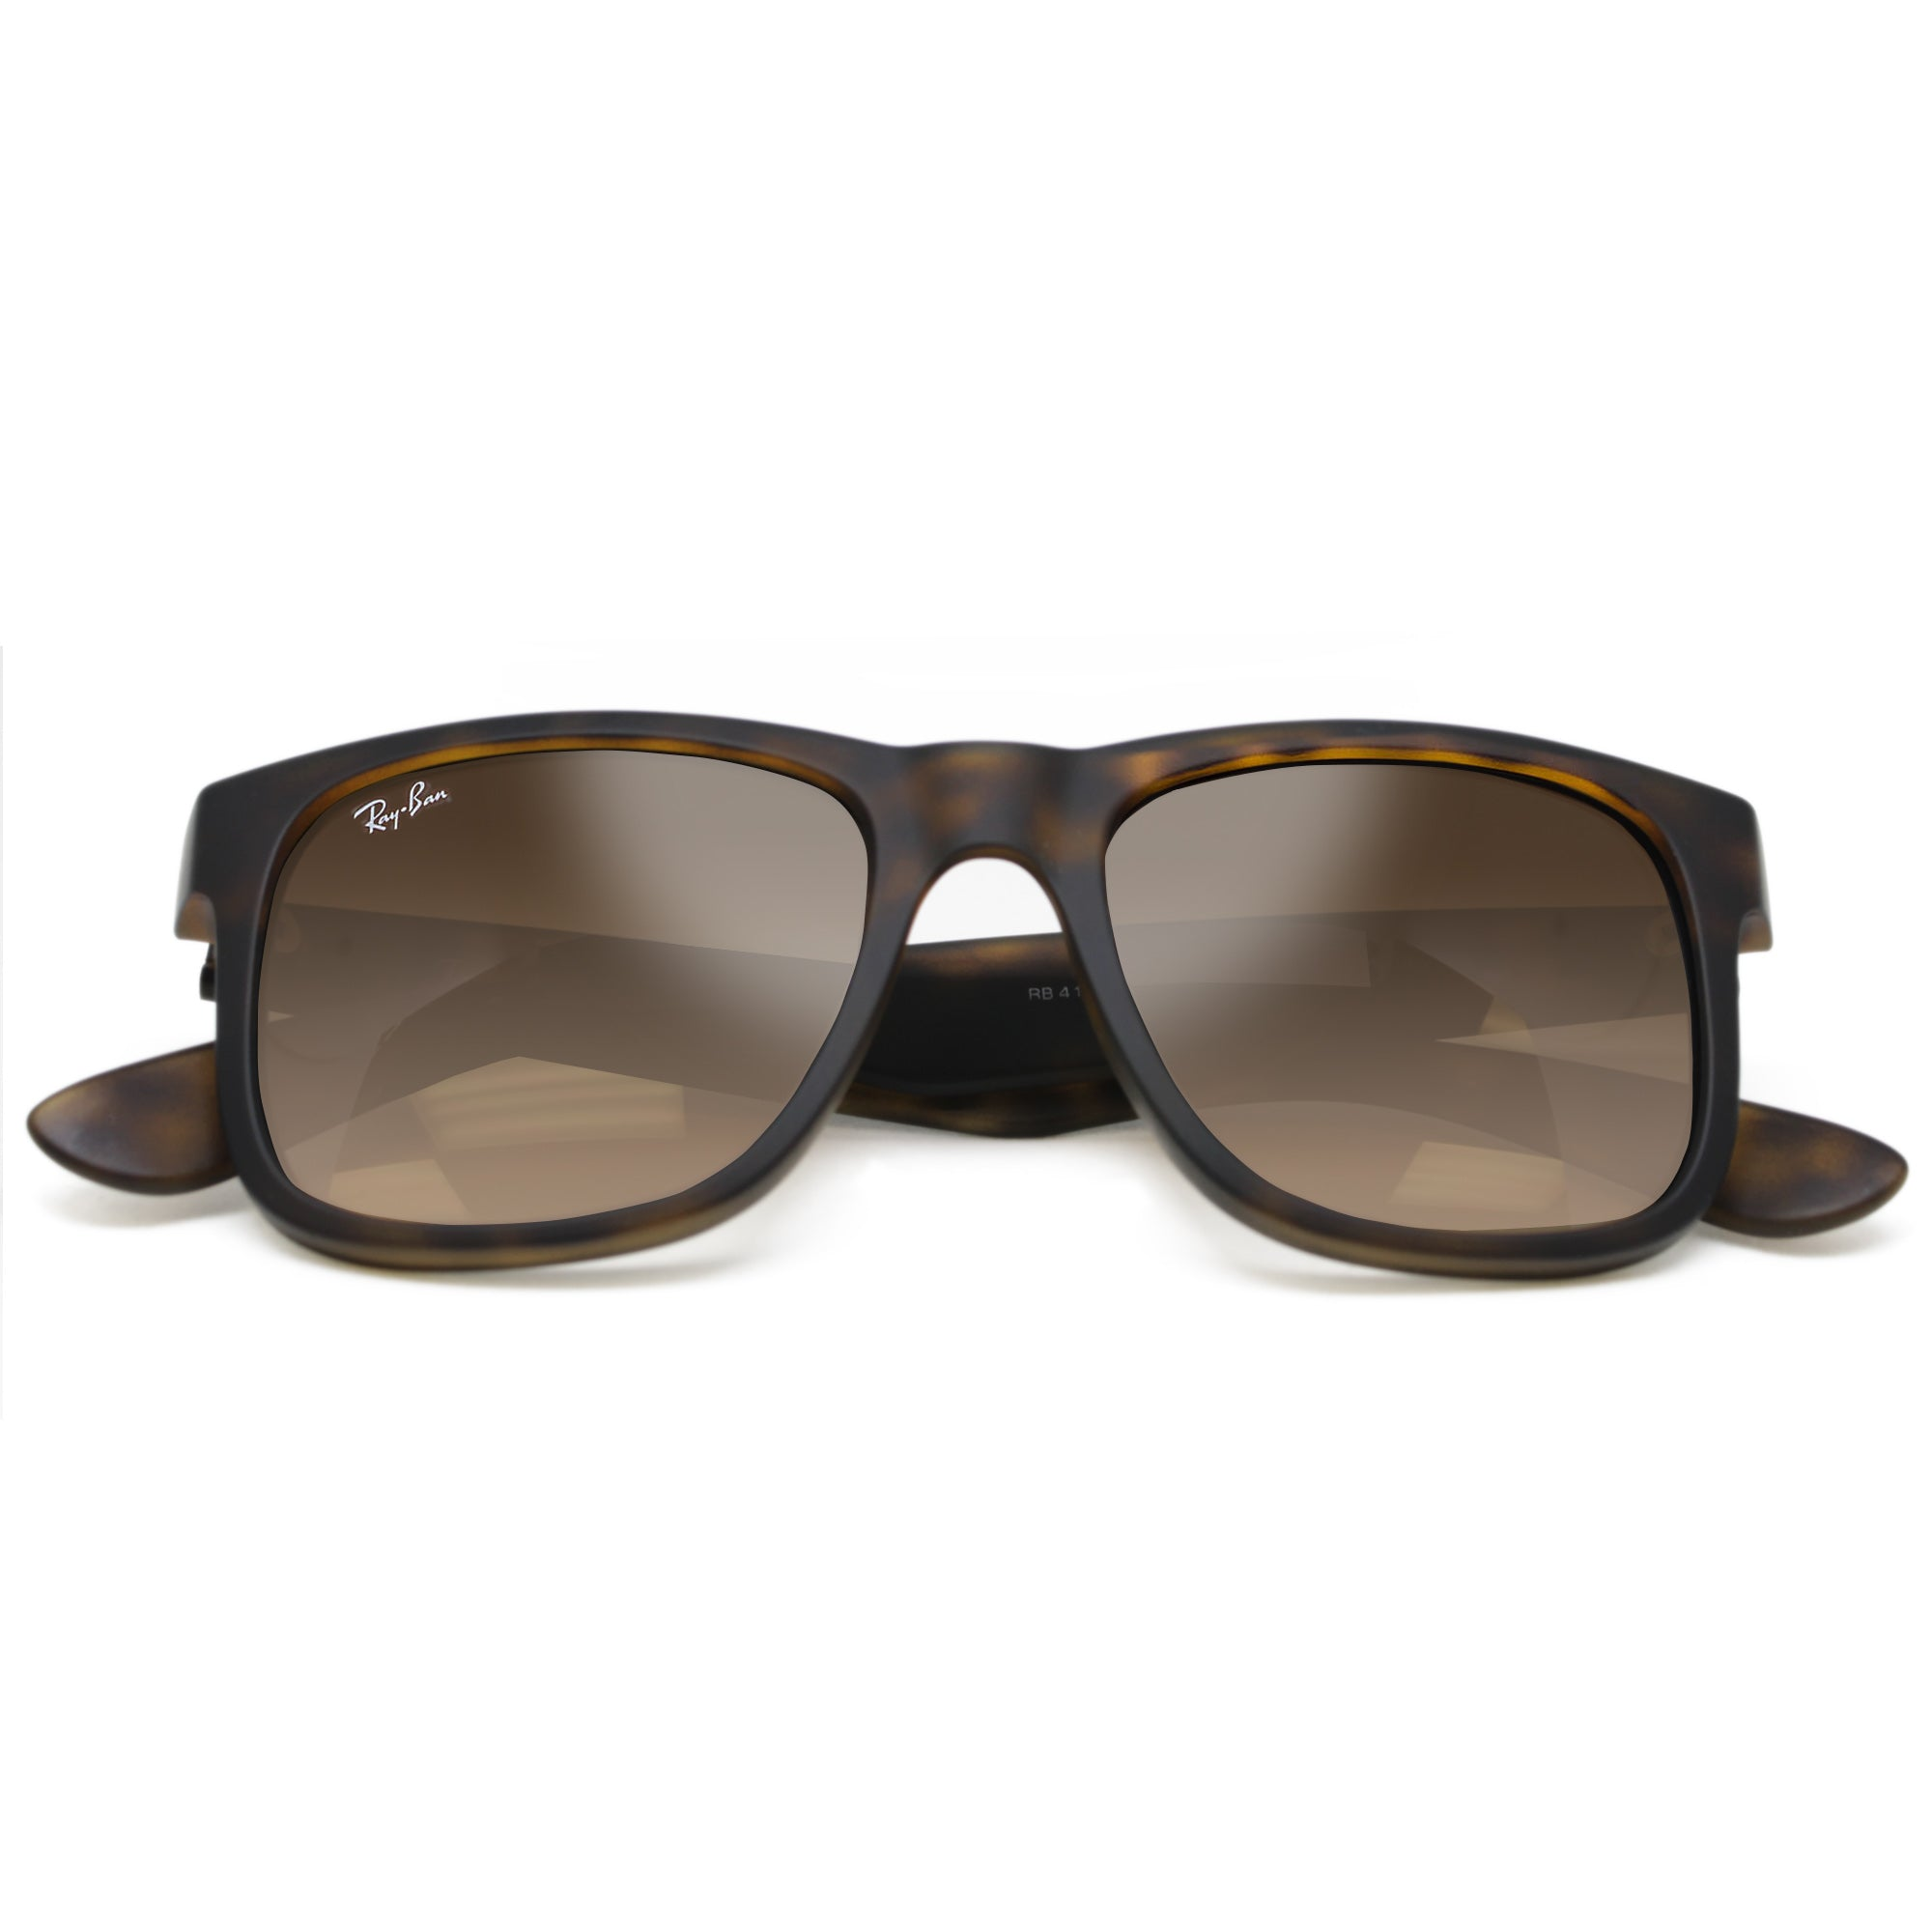 87870c37a8ad0 Ray-Ban JUSTIN NEW! 4165 UNISEX - TORTOISE - BROWN GRADIENT 710-13 ...